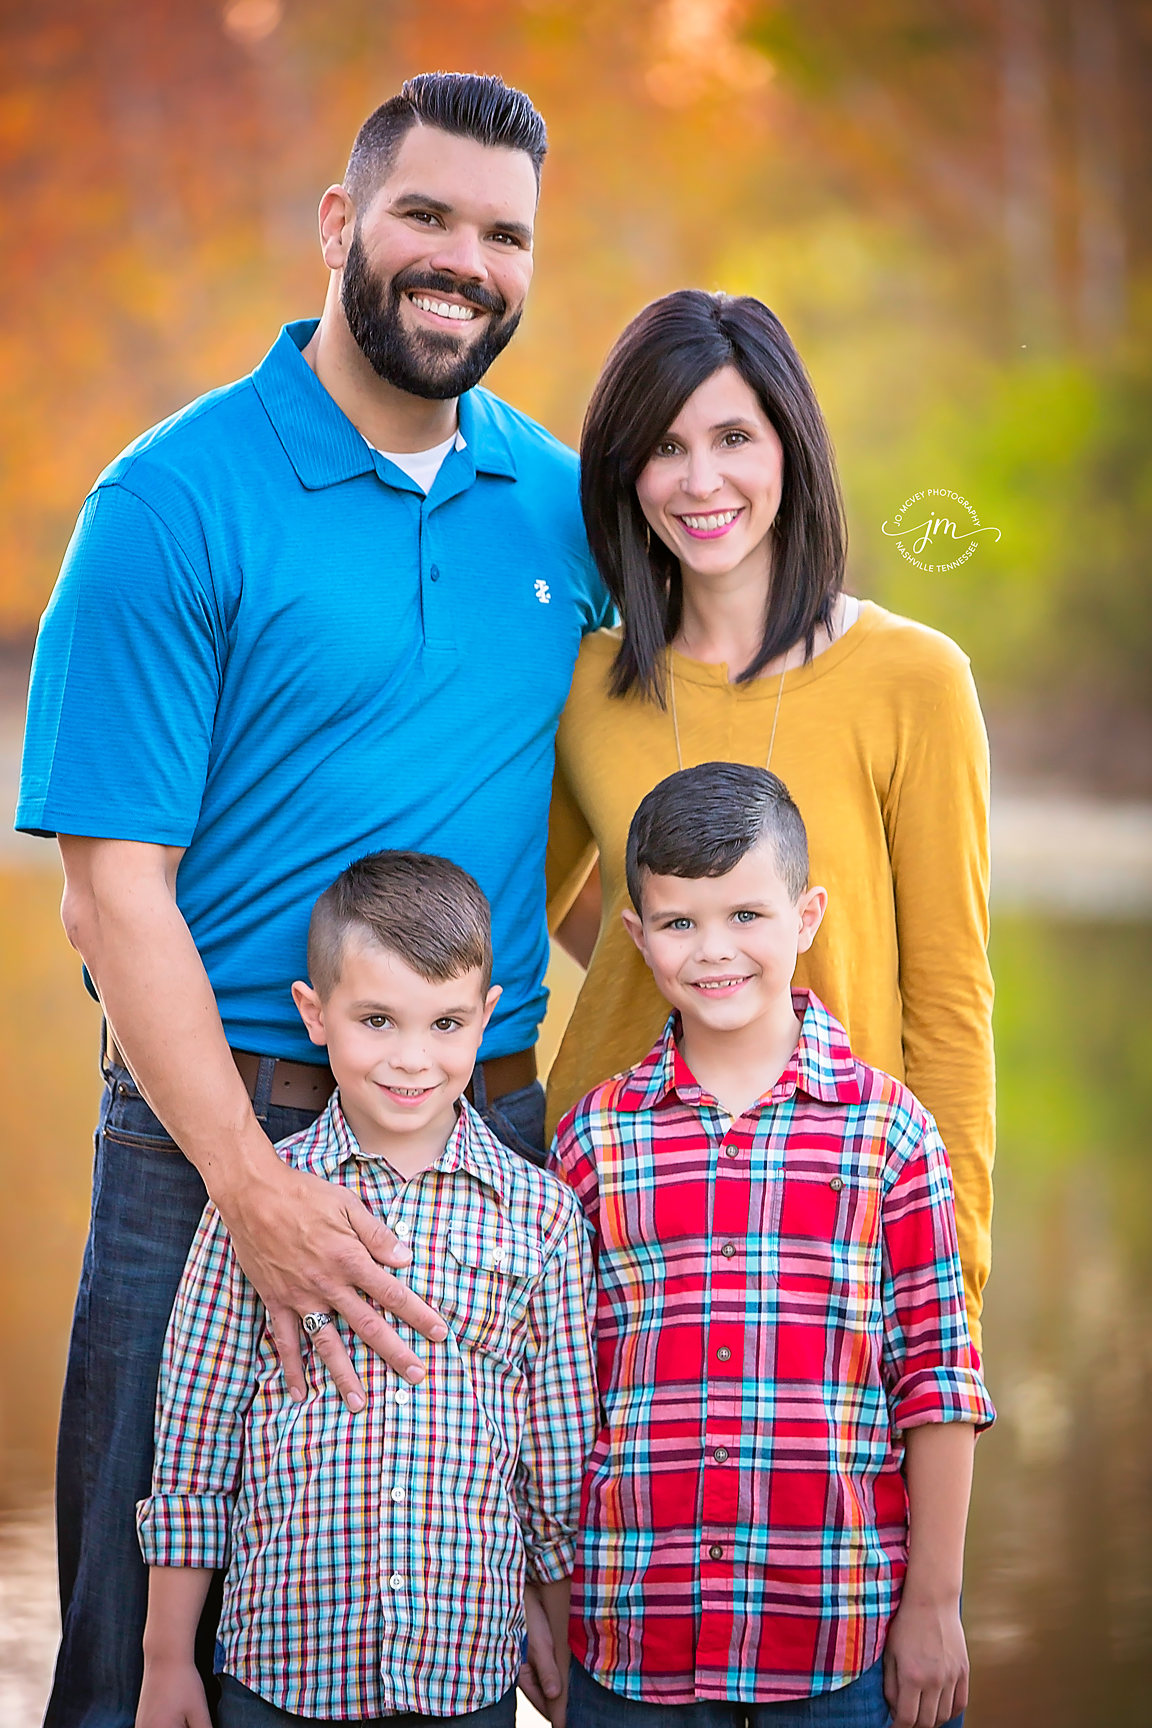 Fall Family of 4 - Nashville Family Photographer | Jo McVey Photography